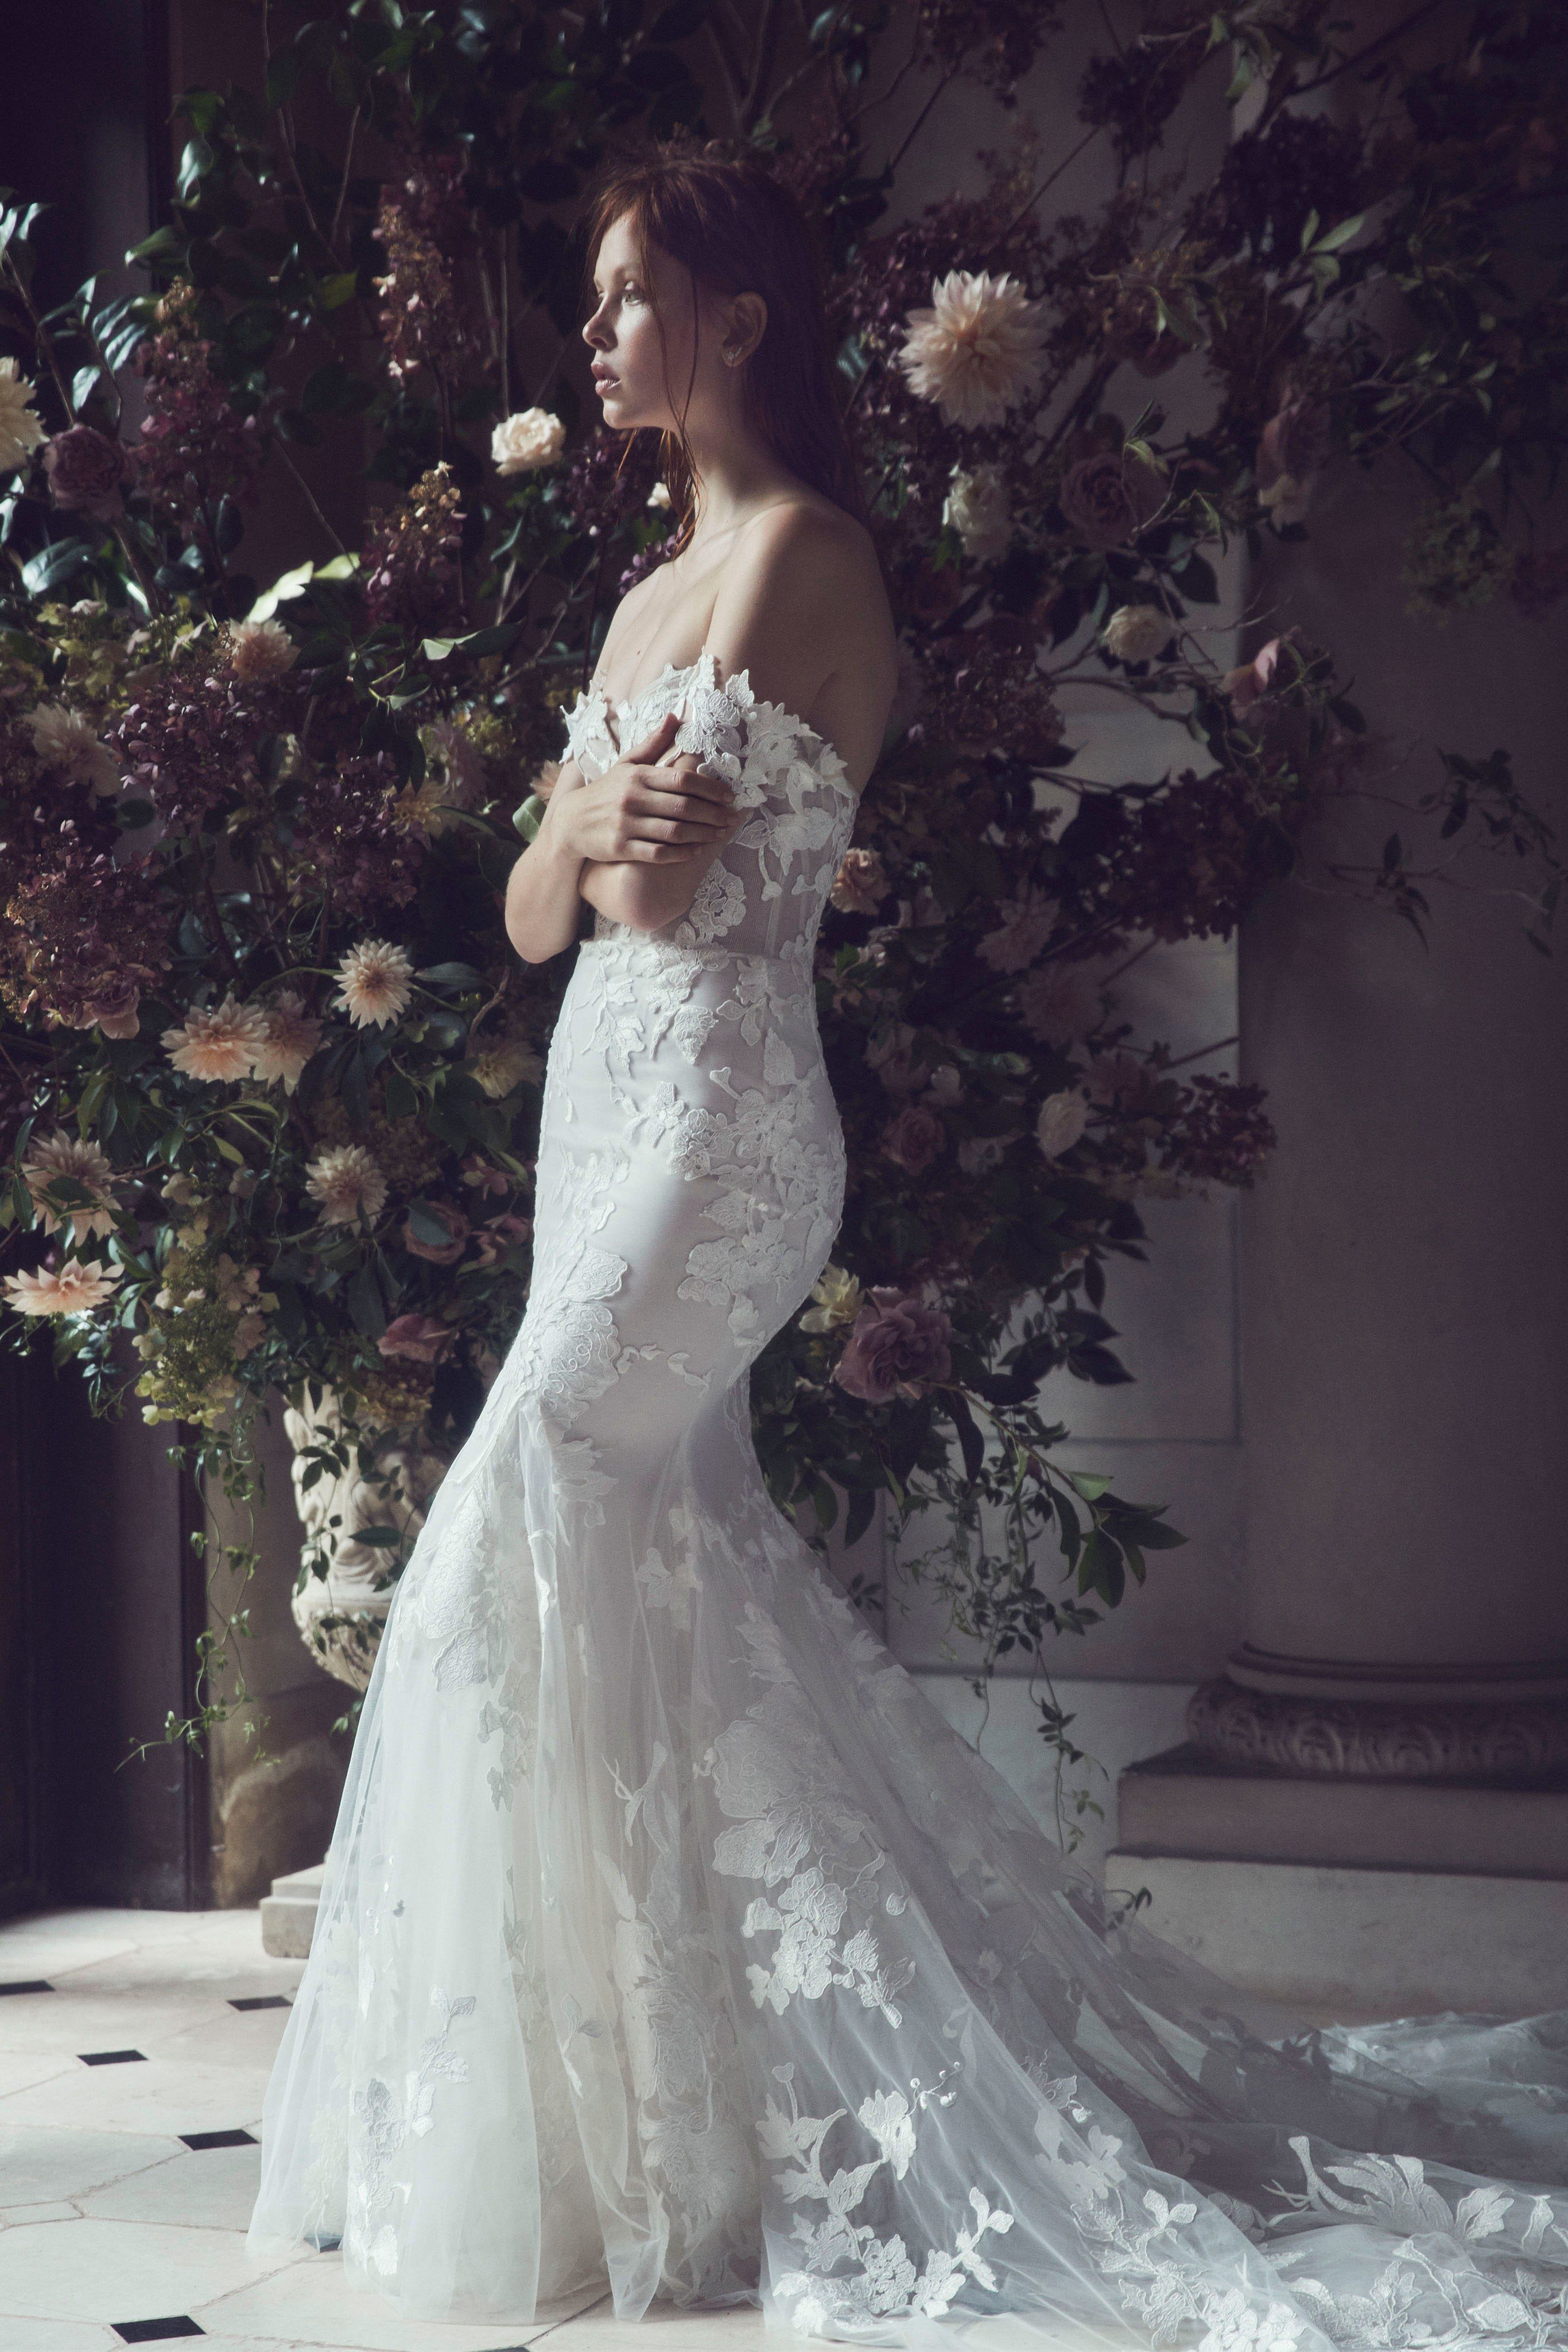 Wedding decorations for reception january 2019 Monique Lhuilier Fall  Bridal Collection weddingdress